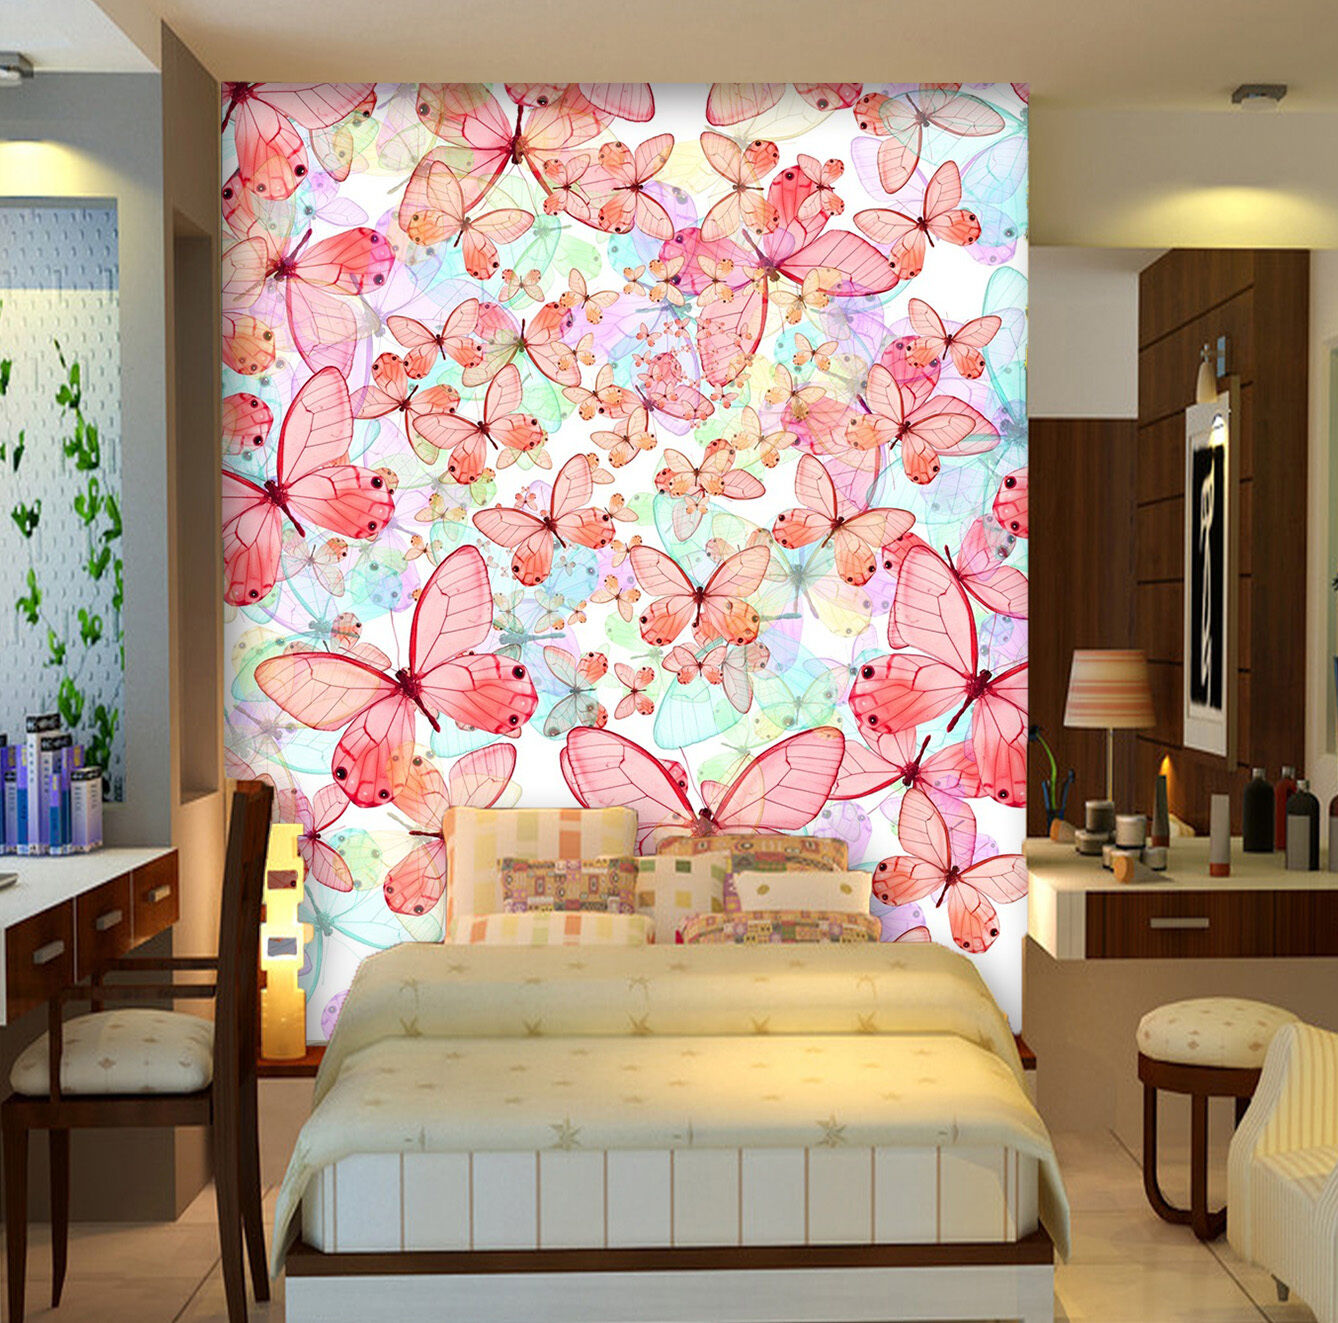 3D Butterfly Pattern 11 WallPaper Murals Wall Print Decal Wall Deco AJ WALLPAPER